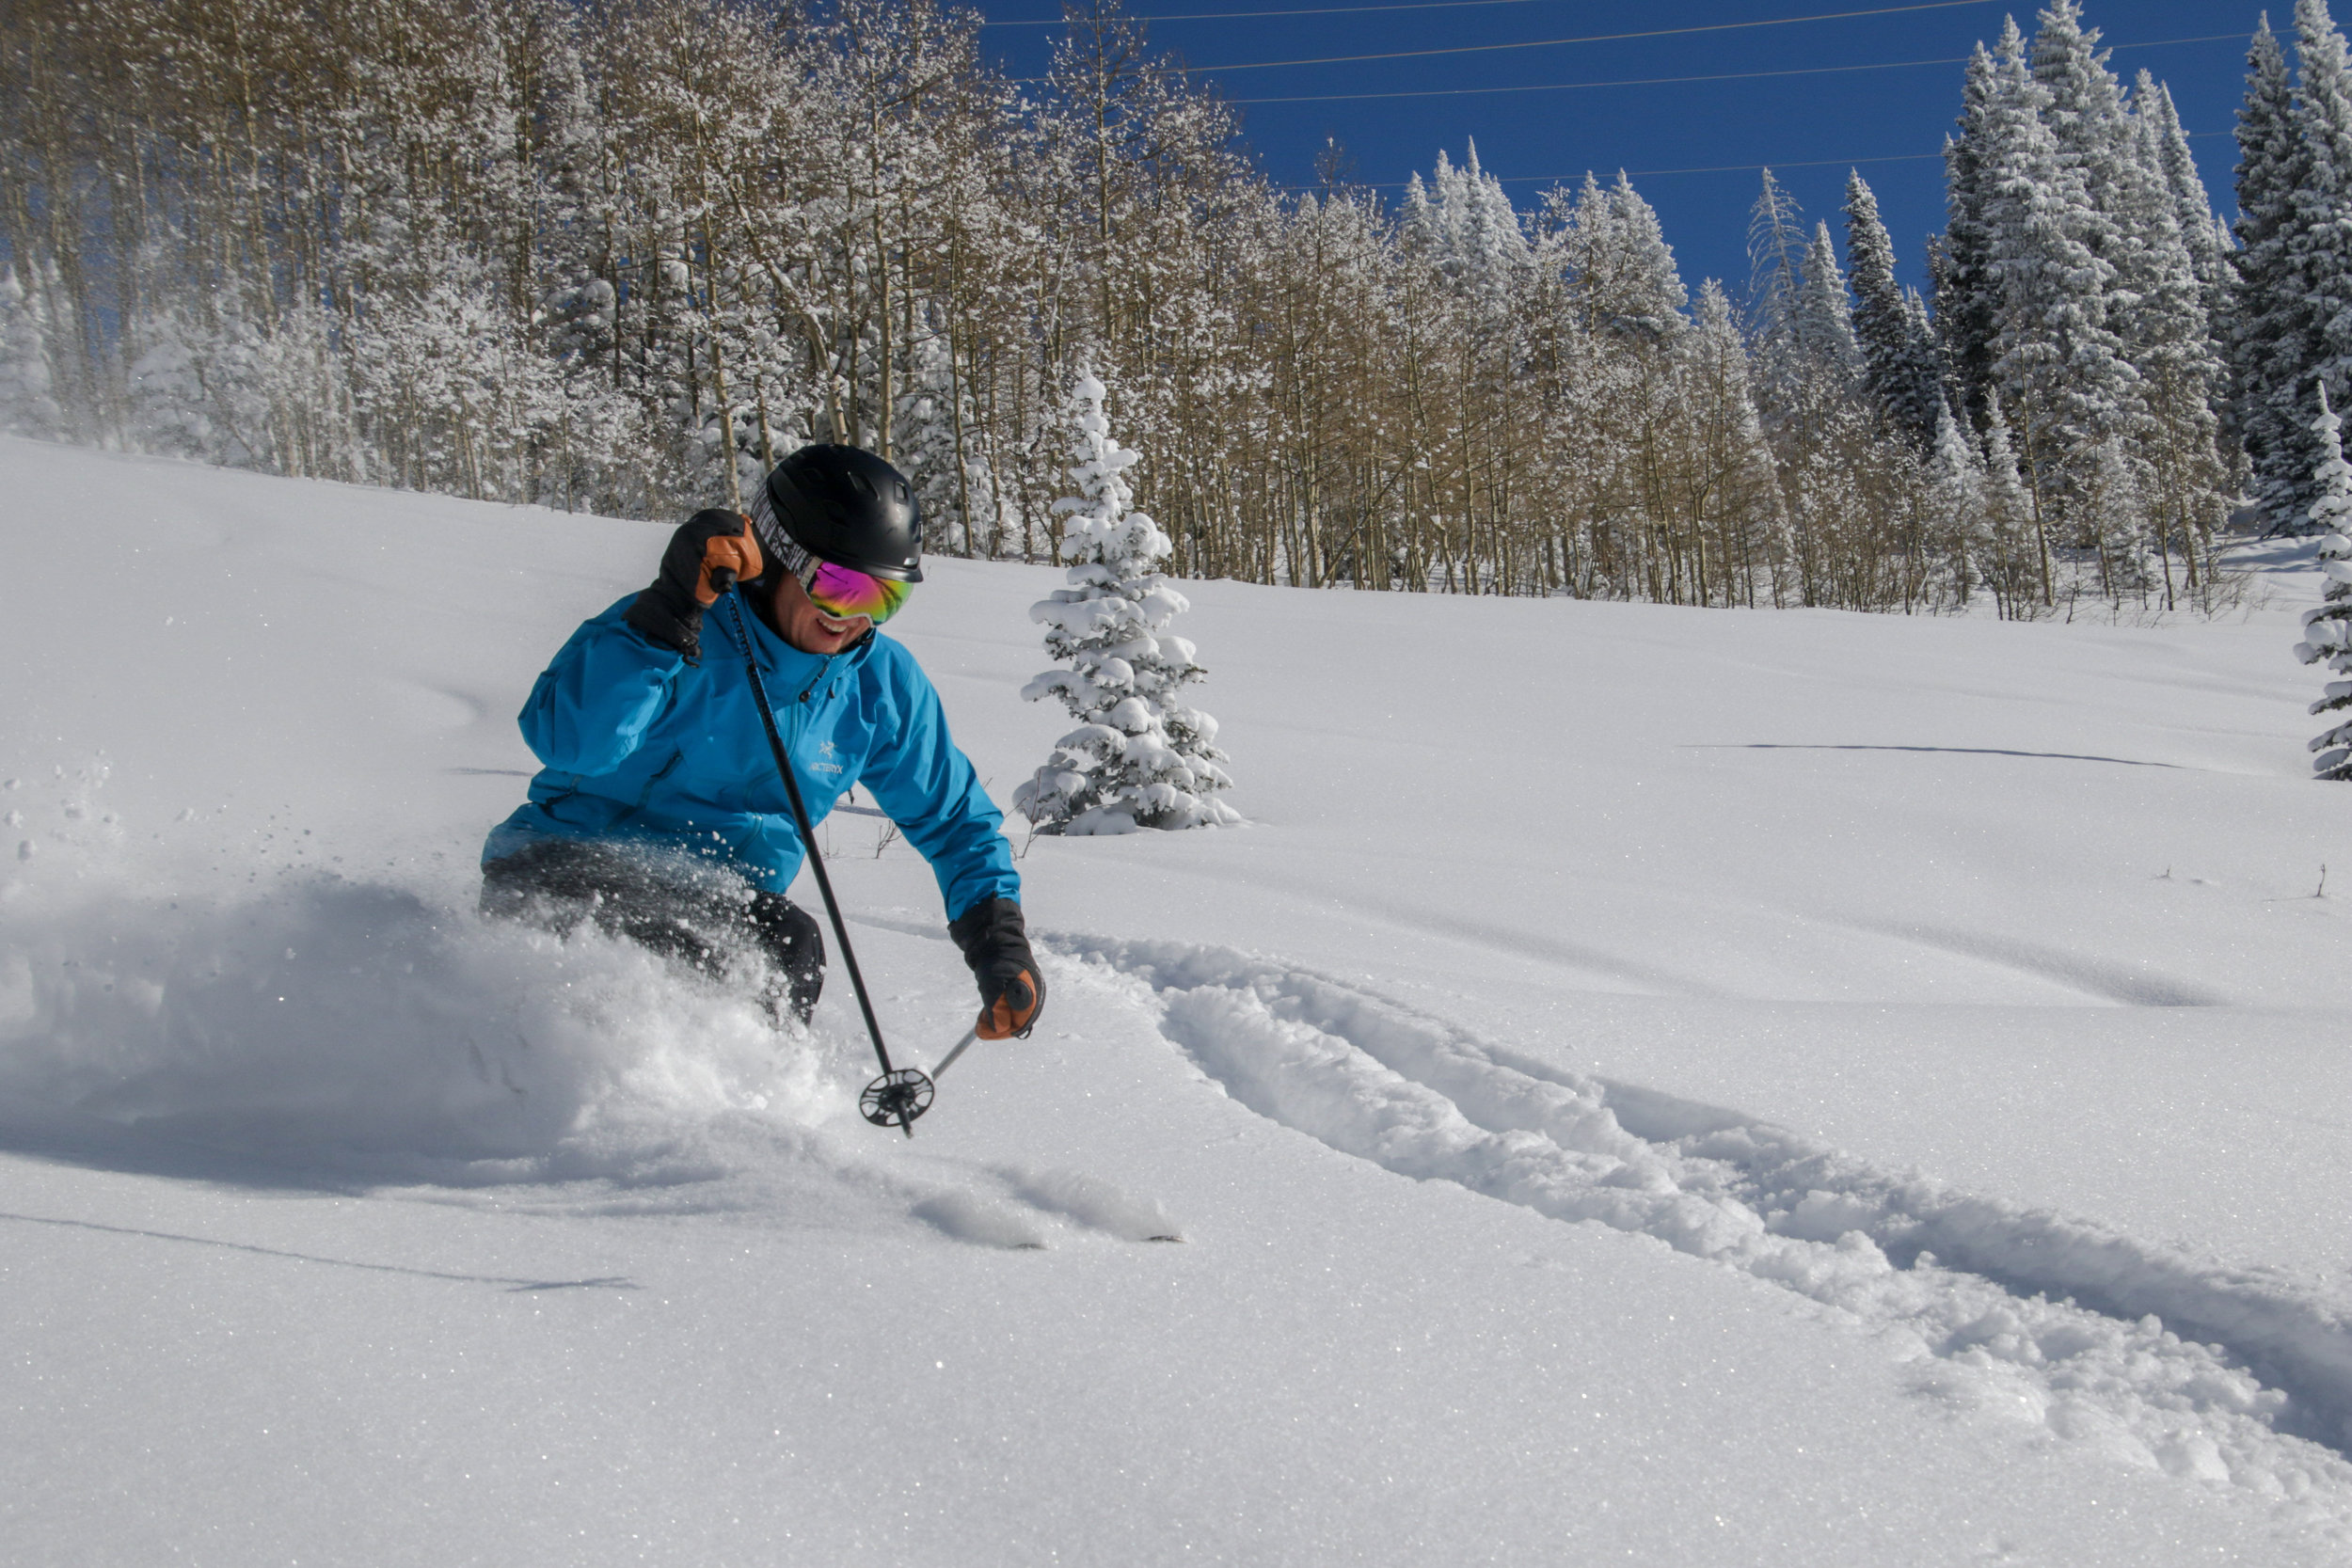 Steve - Backcountry north of Steamboat